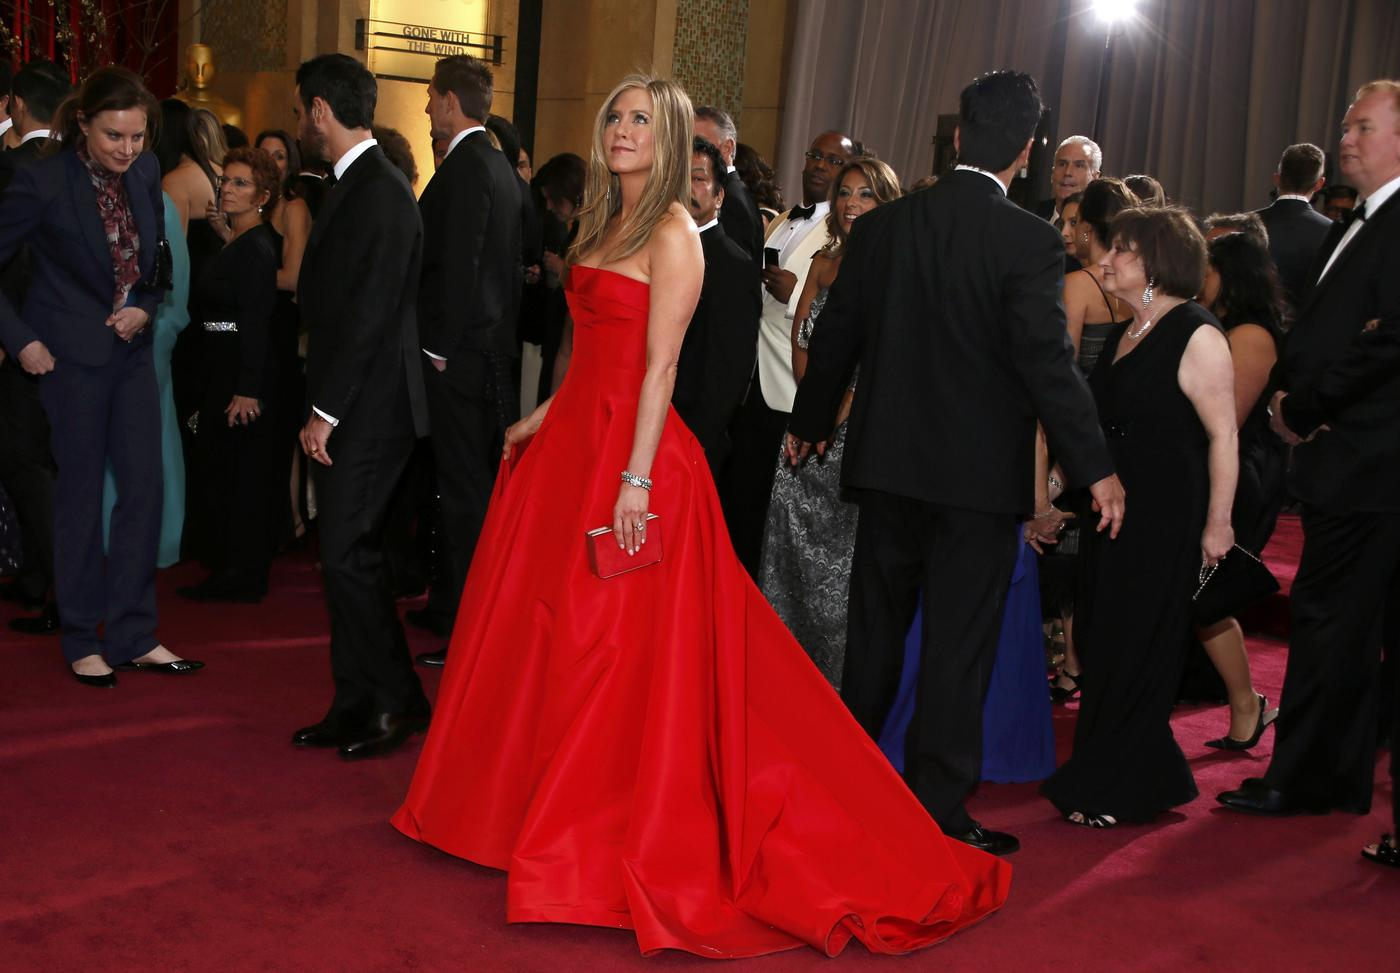 Seeing red for your big day? Take your red wedding dress inspiration from Jennifer Aniston and co